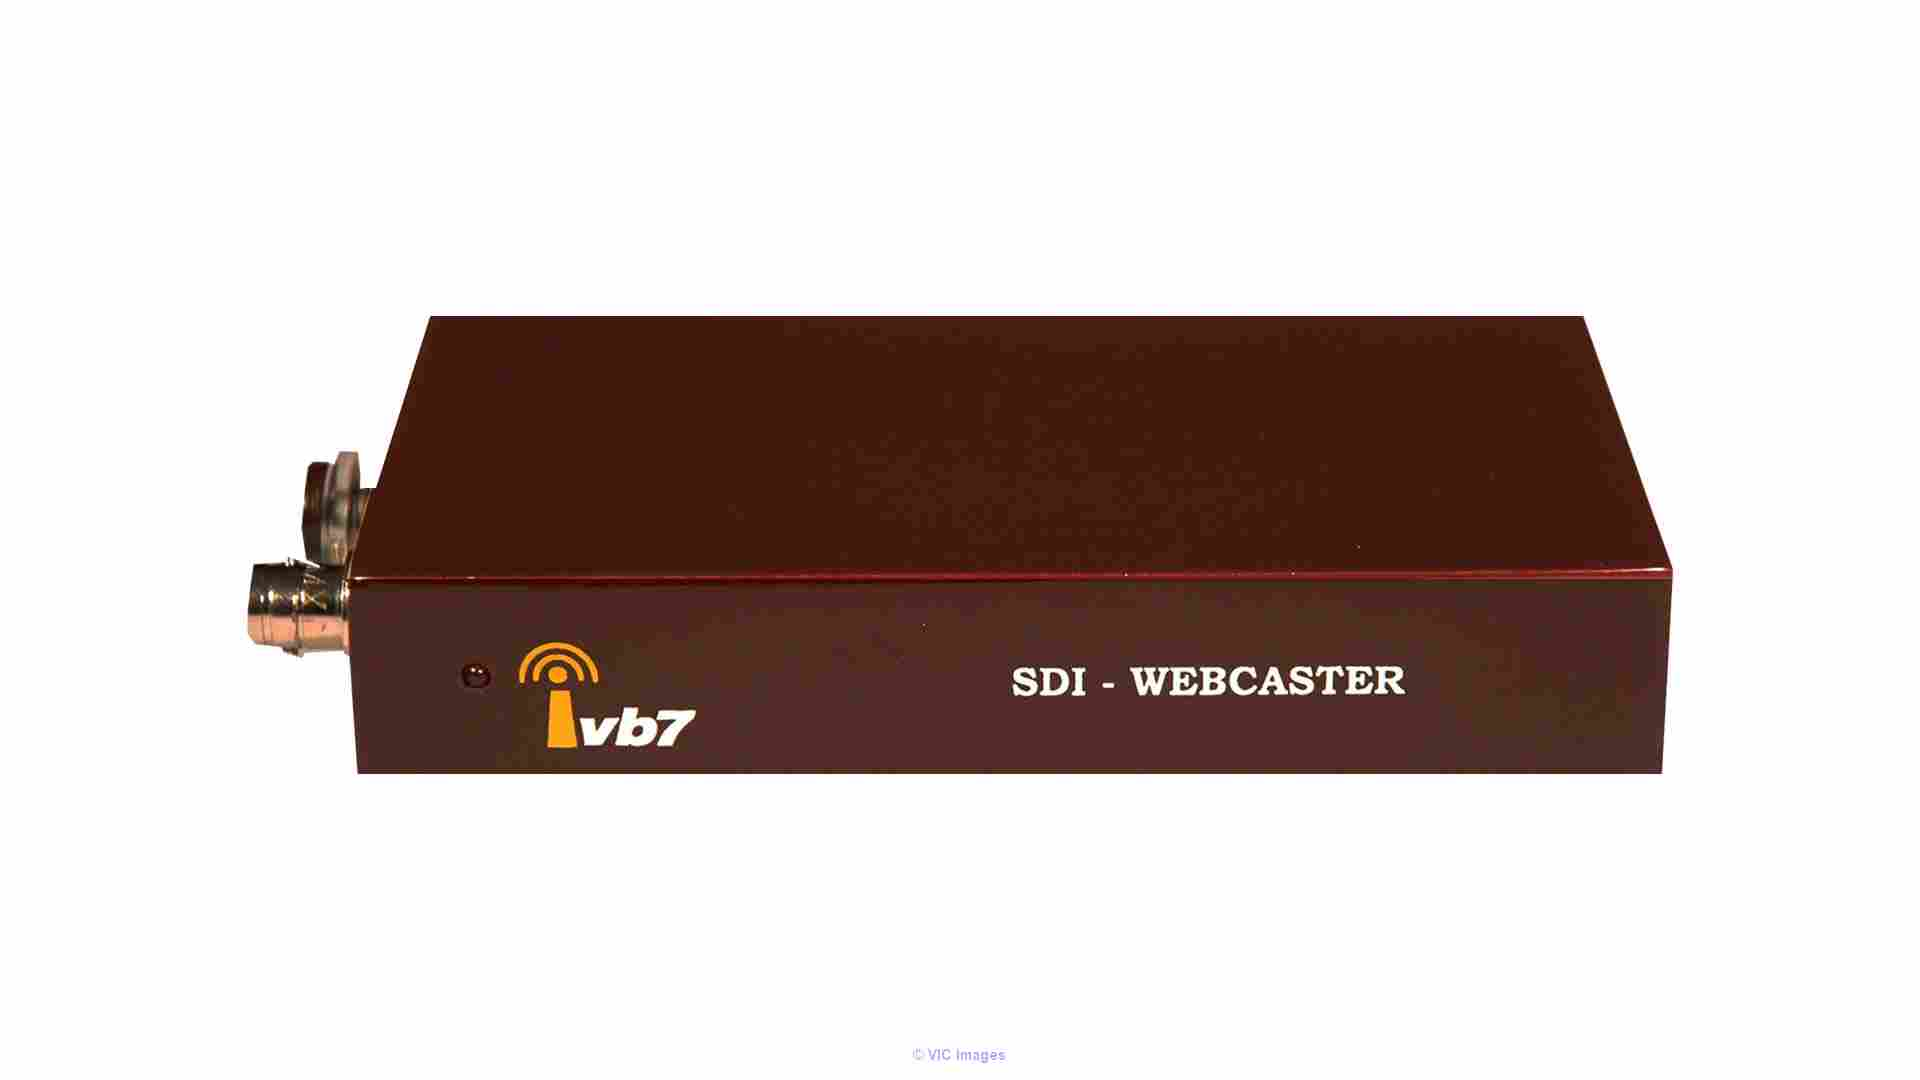 "Professional SDI/AV Webcaster ""NOW WITH SPECIAL OFFERS"" Ottawa, Ontario, Canada Classifieds"